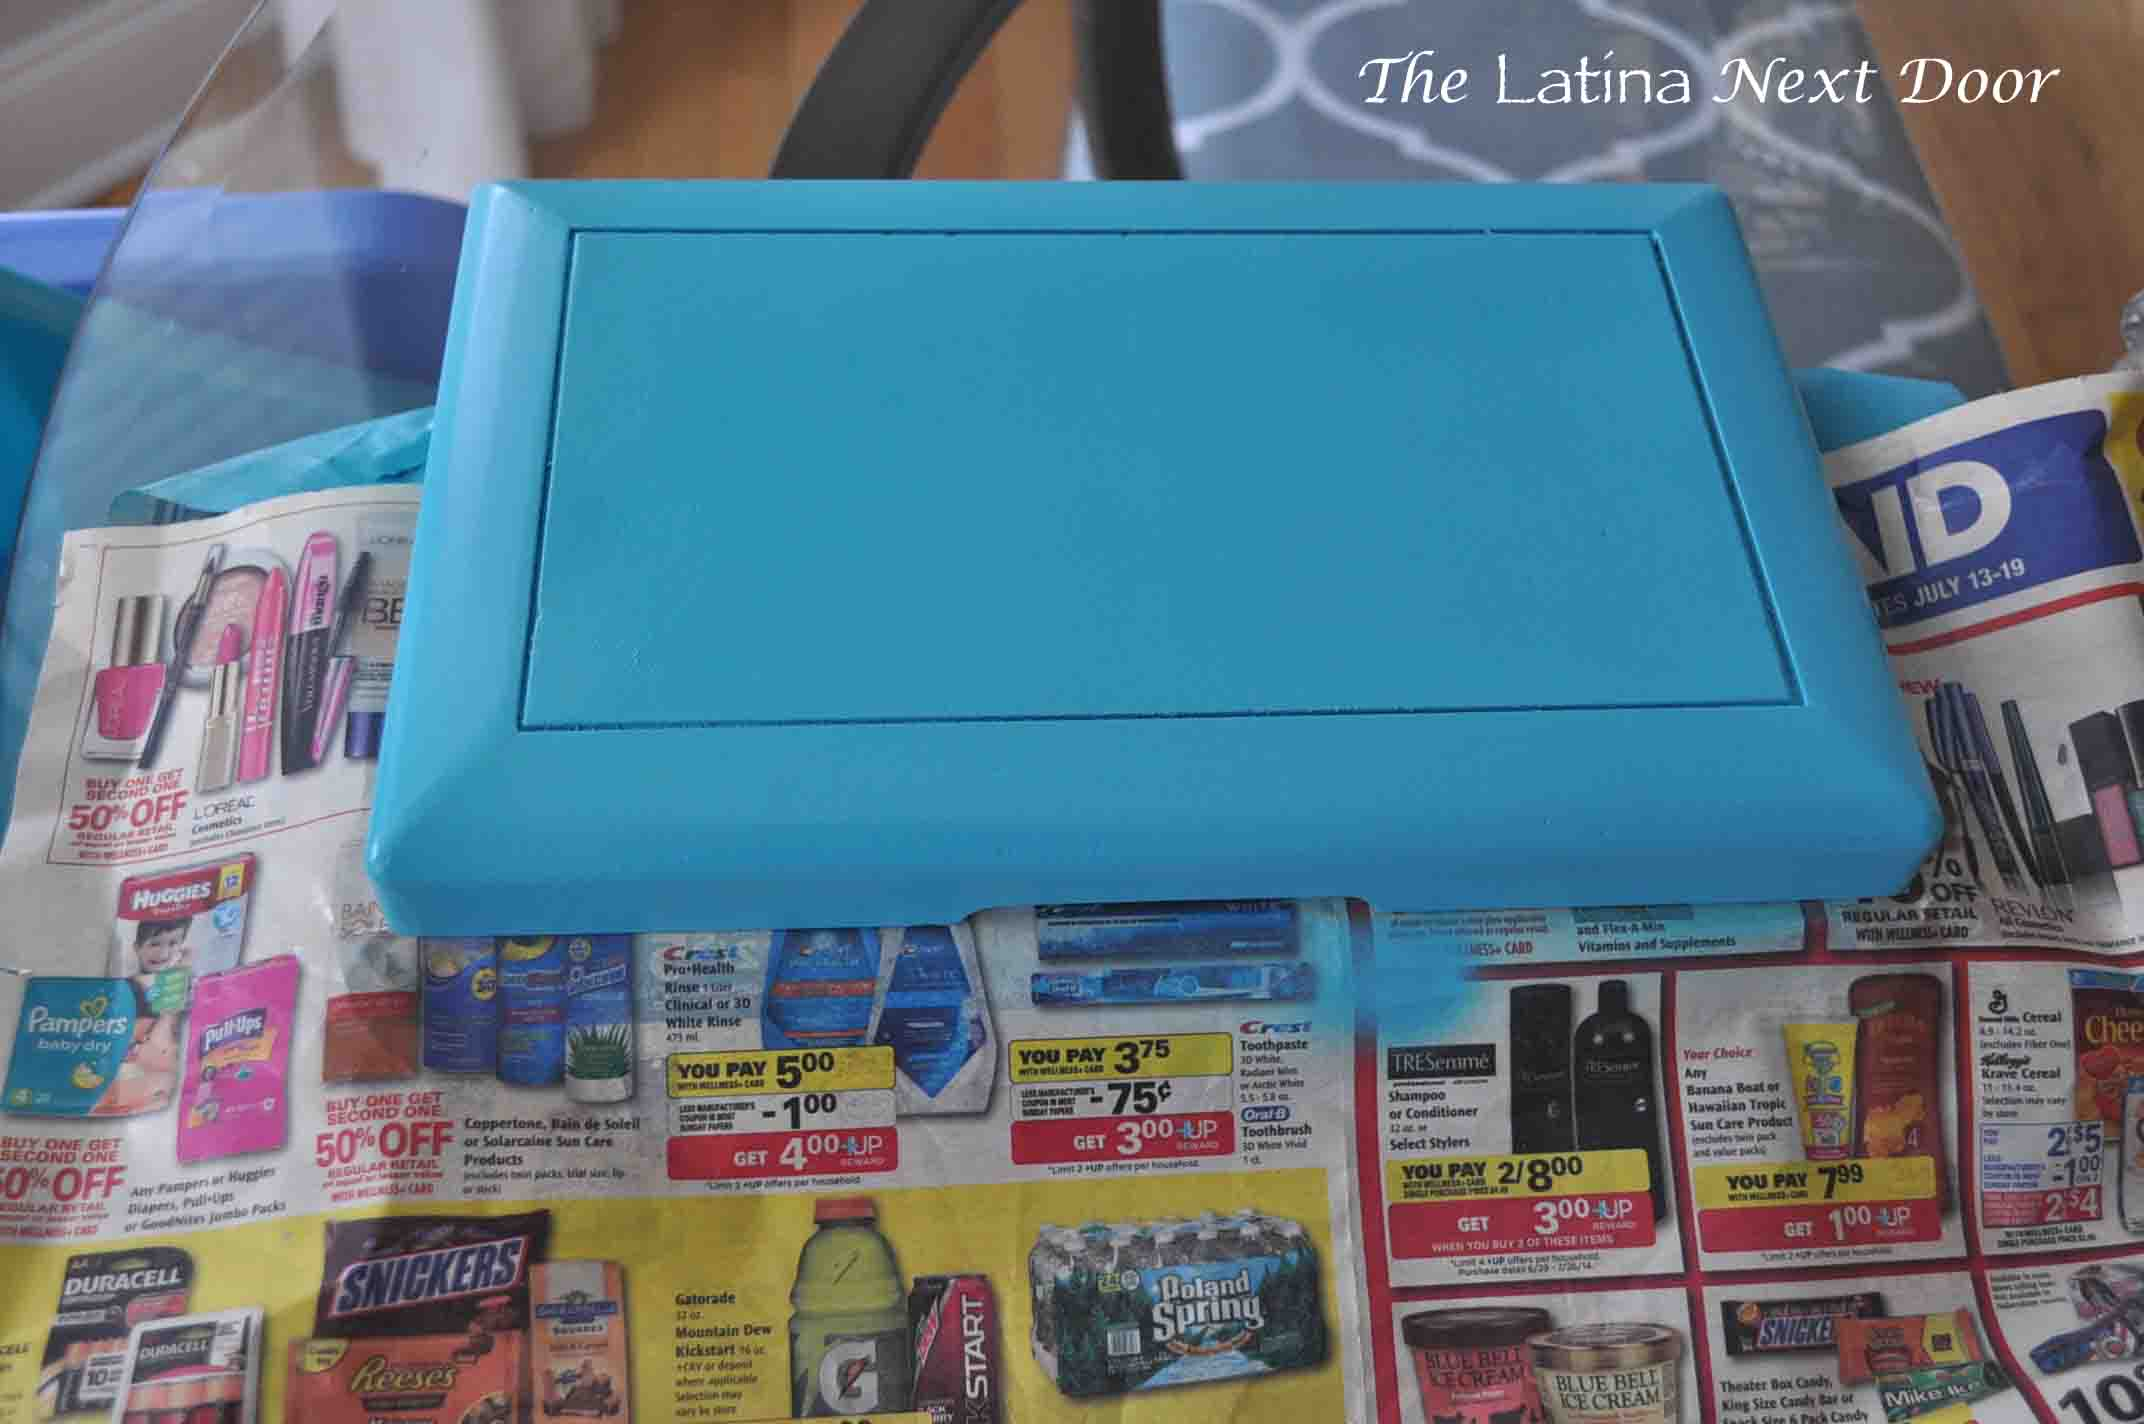 DIY Jewelry Box Makeover 6 Goodwill Jewelry Box Makeover for Under $6